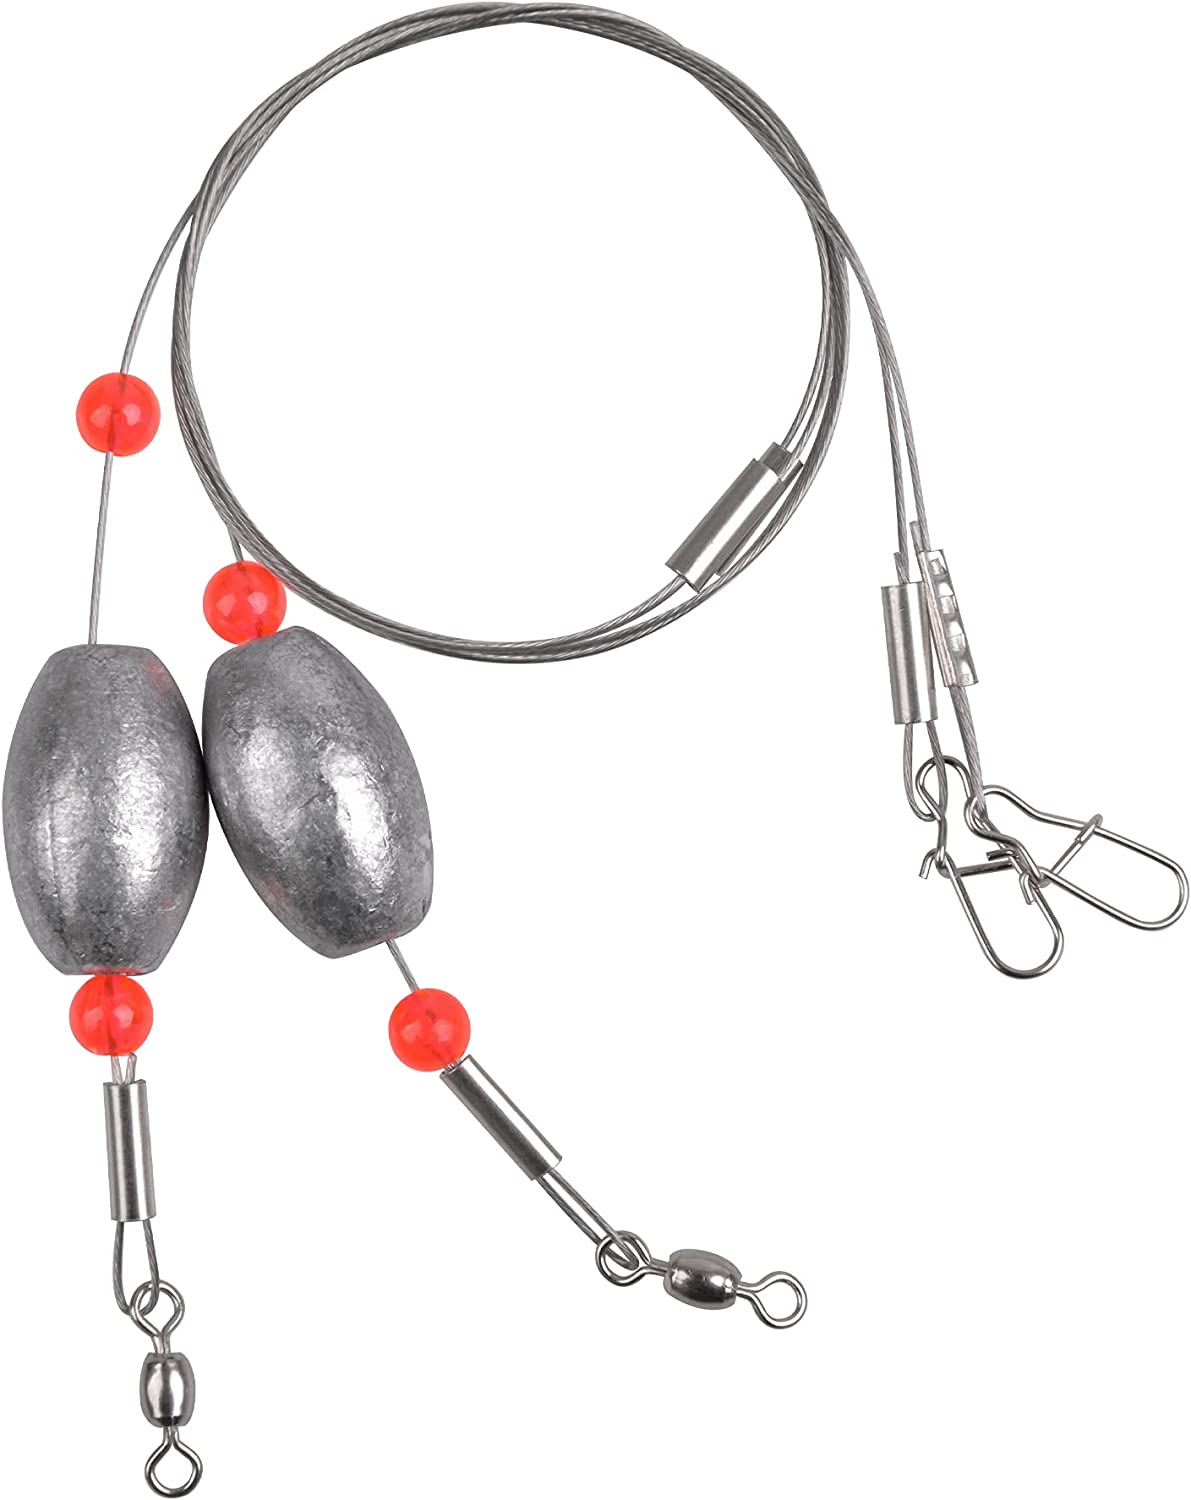 Easy Catch Louisville-Jefferson County Mall Fishing Egg Sinker Weight 4pcs Rigs S Ready Mail order with